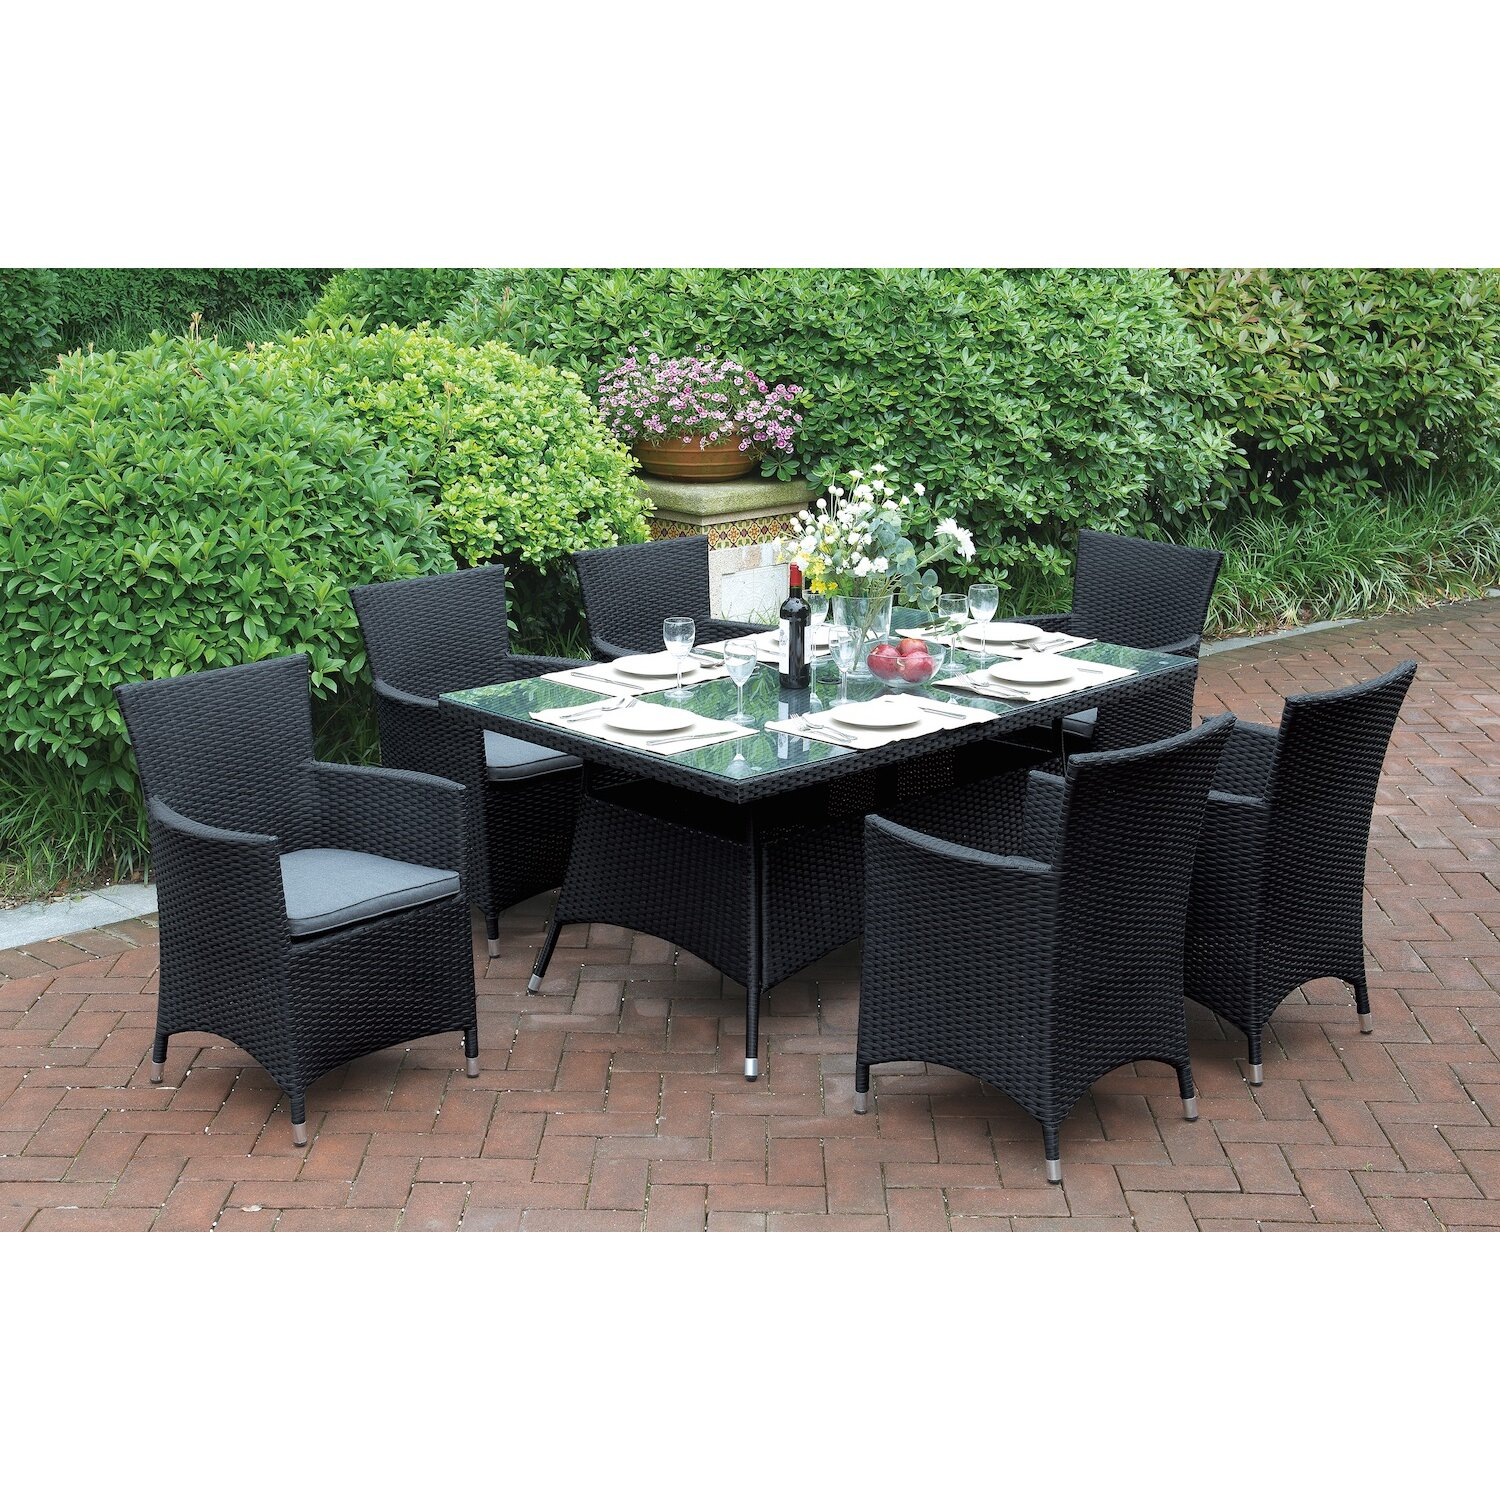 Jb patio piece dining set reviews wayfair